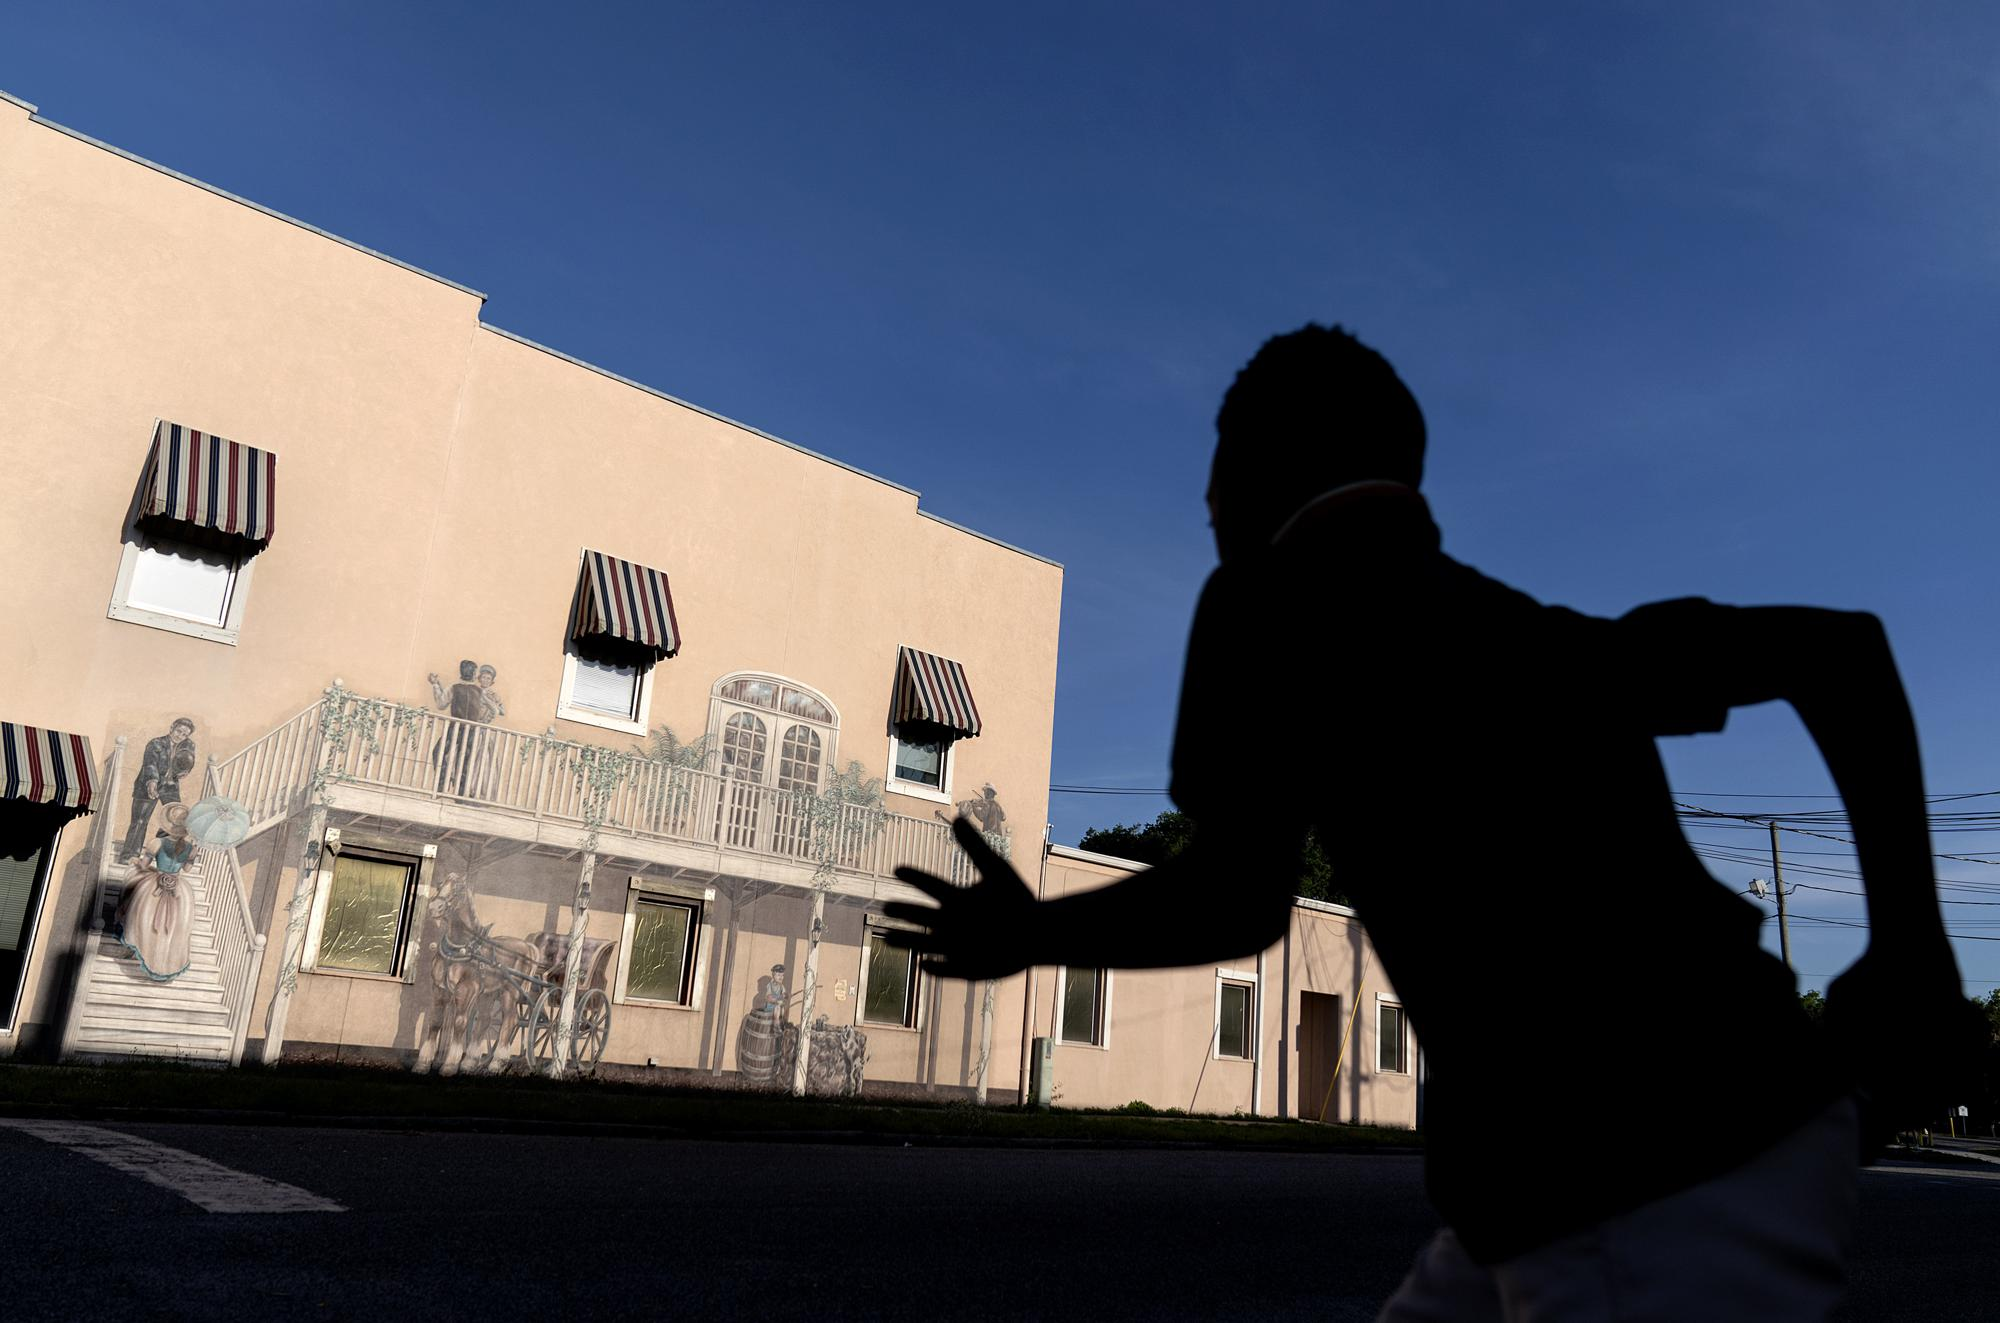 """A mural titled """"Bygone Days"""" decorates a downtown building as a child rushes to cross a street in Palatka, Fla., Tuesday, April 13, 2021. Jim Crow Florida was one of the most dangerous places in the South to be Black. In that era, a Black man in Florida was more at risk of being lynched - an execution without trial, often by gun or hanging - than in any other state, according to a University of Georgia study of lynching records. (AP Photo/David Goldman)"""